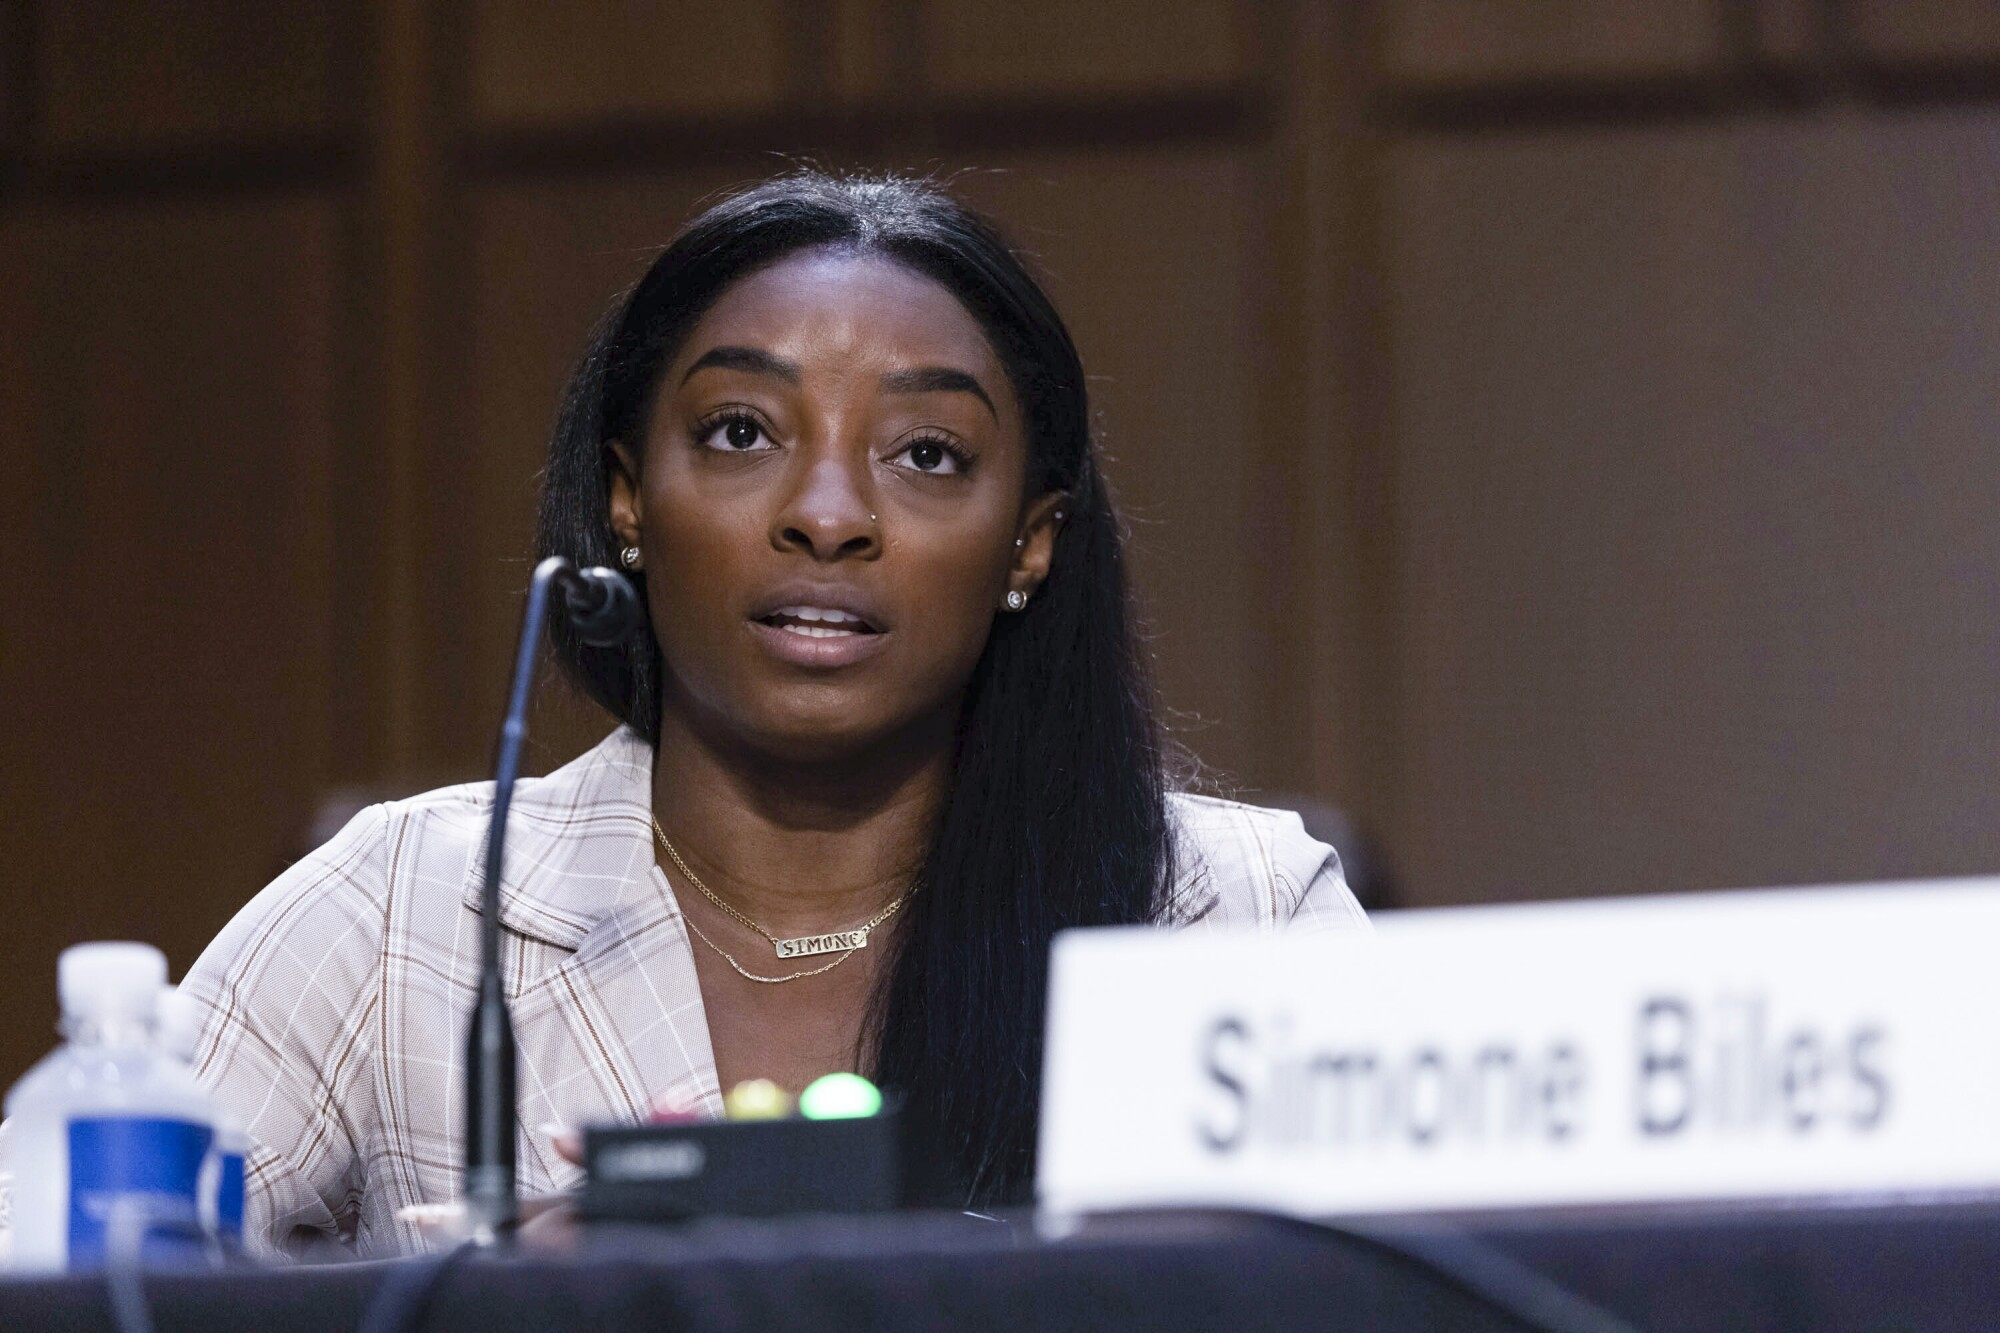 Olympic gymnast Simone Biles testifies on Capitol Hill during a Senate Judiciary hearing.